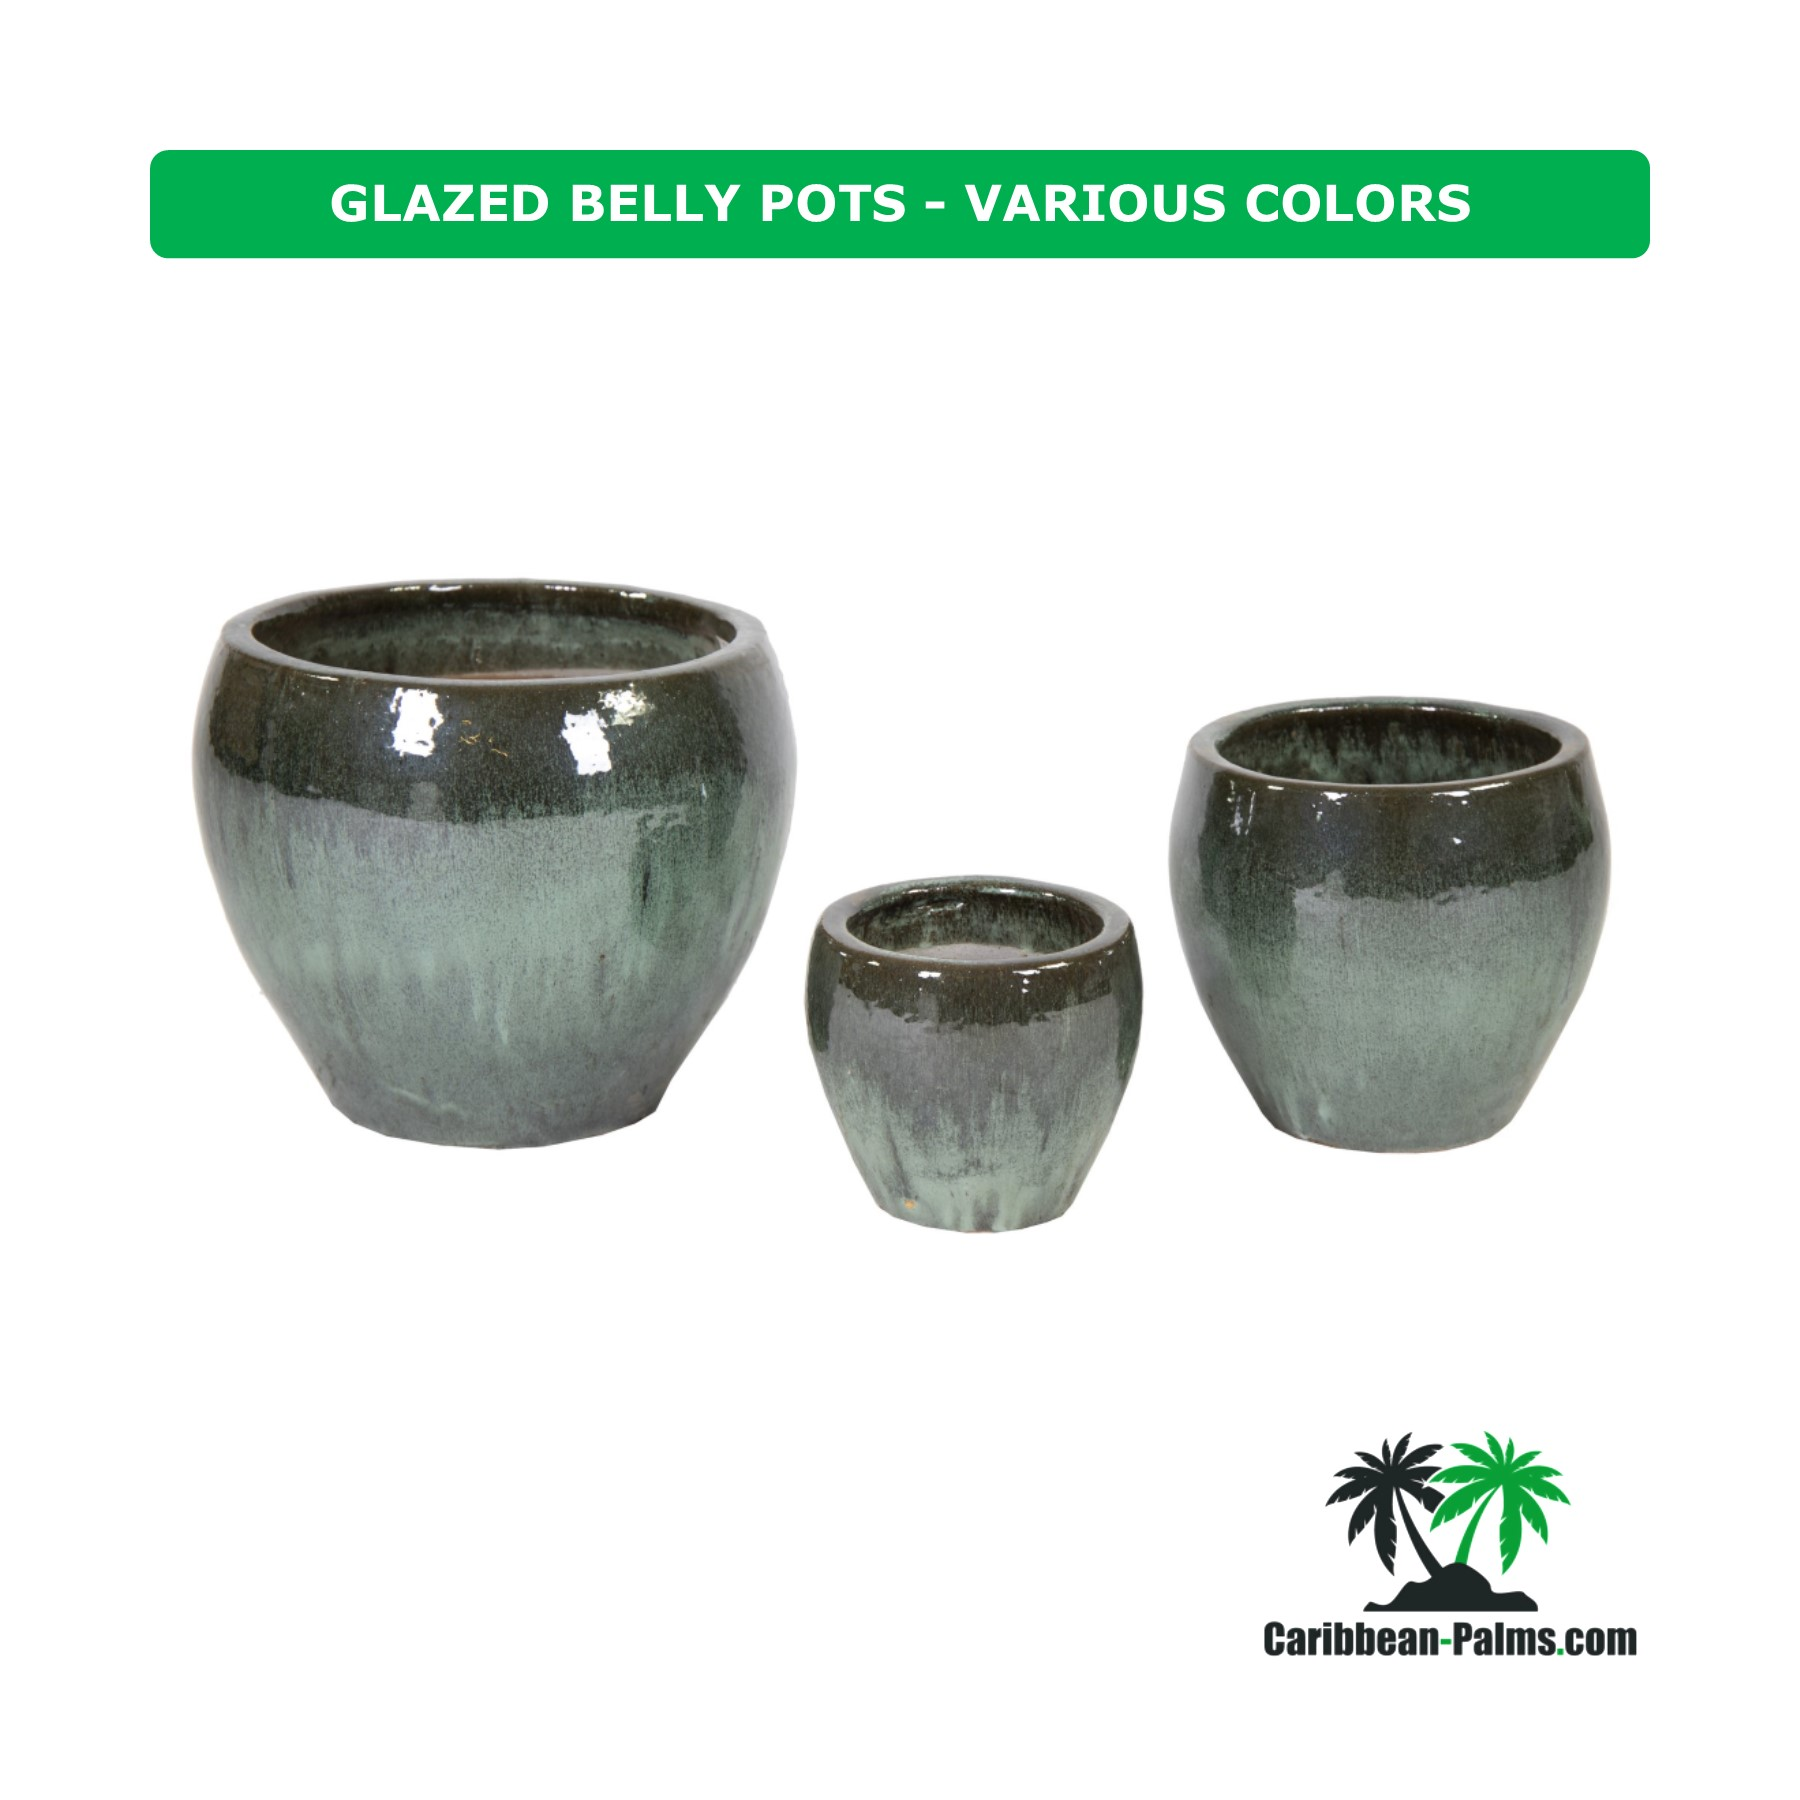 GLAZED BELLY POTS VARIOUS COLORS